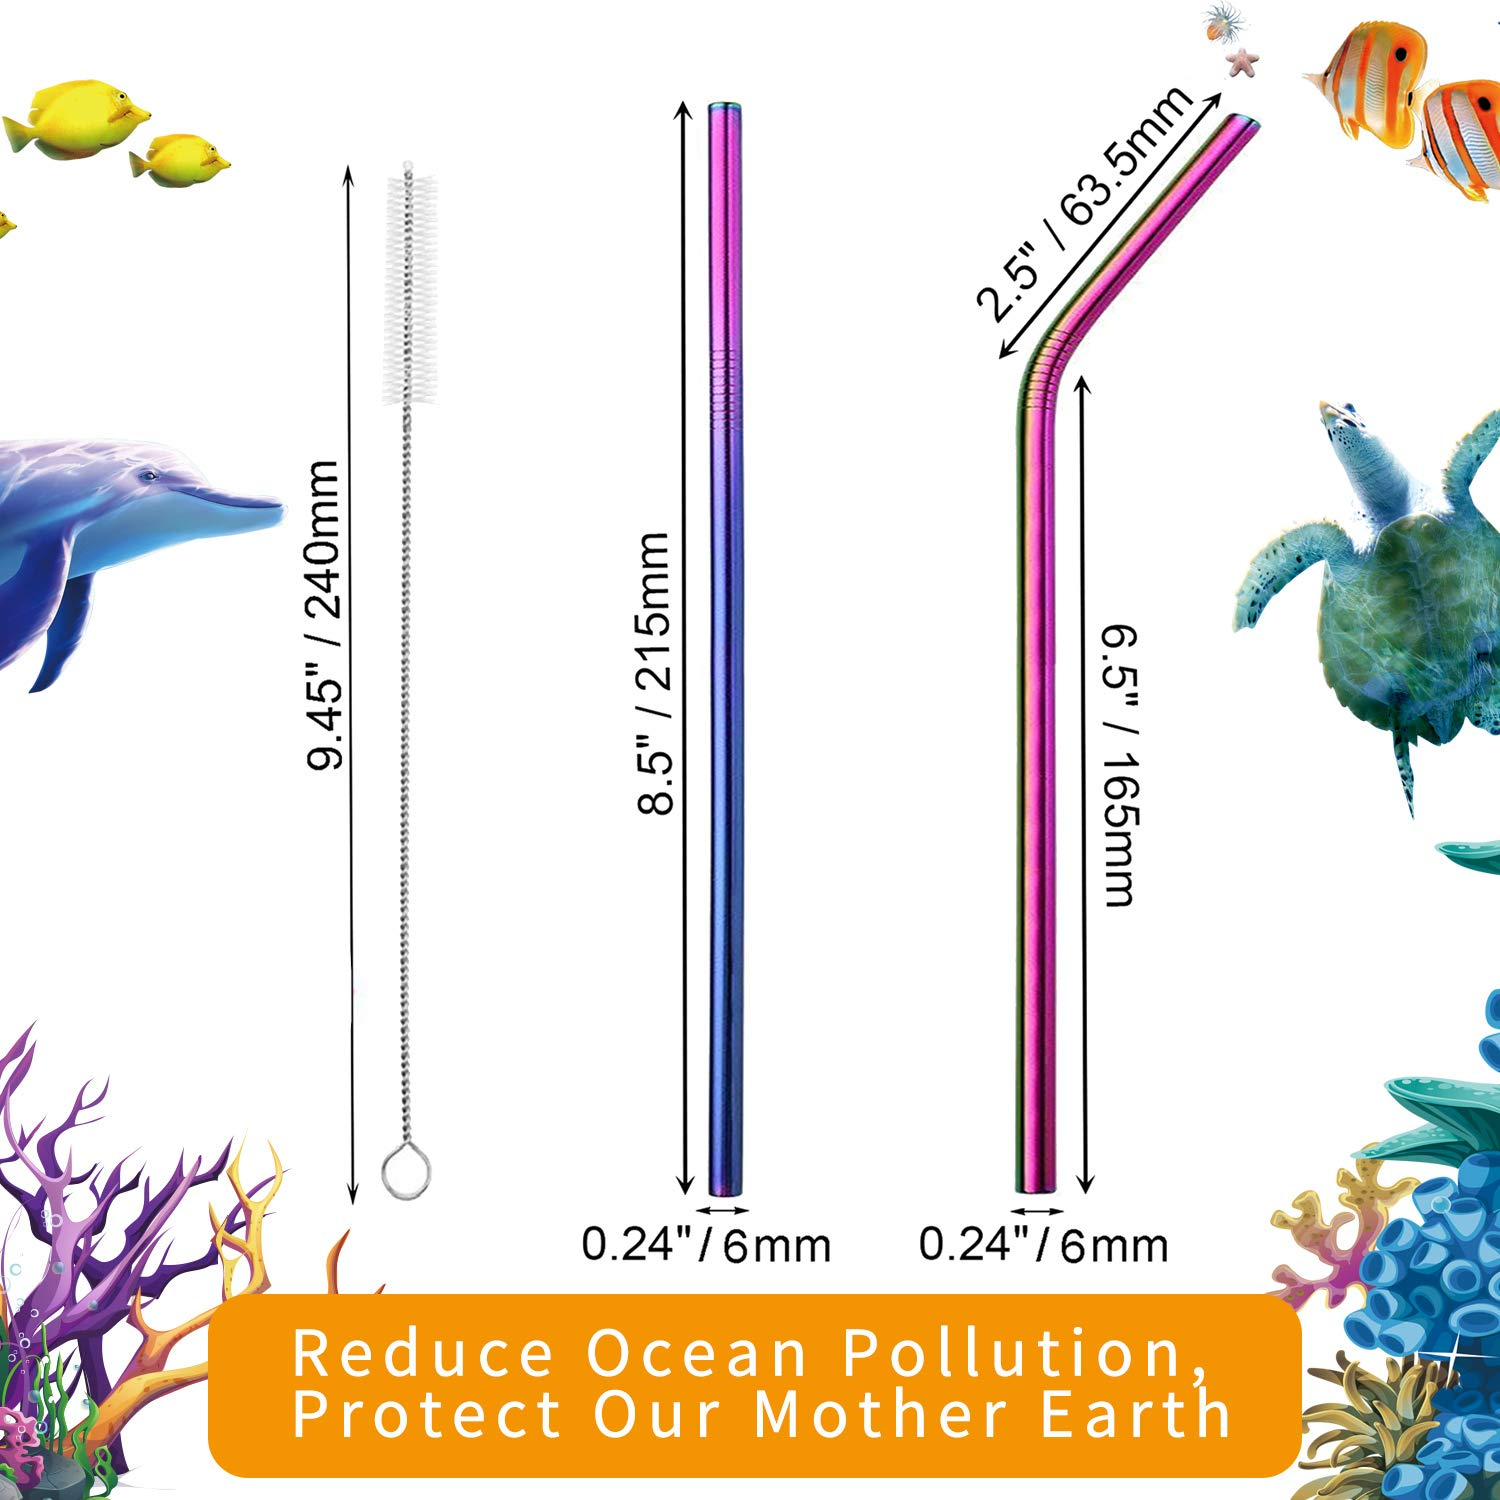 VEHHE Metal Straws Stainless Steel Straws 8 Set Reusable Drinking Rainbow Straws with Cleaning Brush for 20 OZ Tumblers(4 Straight + 4 Bent + 2 Brush) by VEHHE (Image #2)